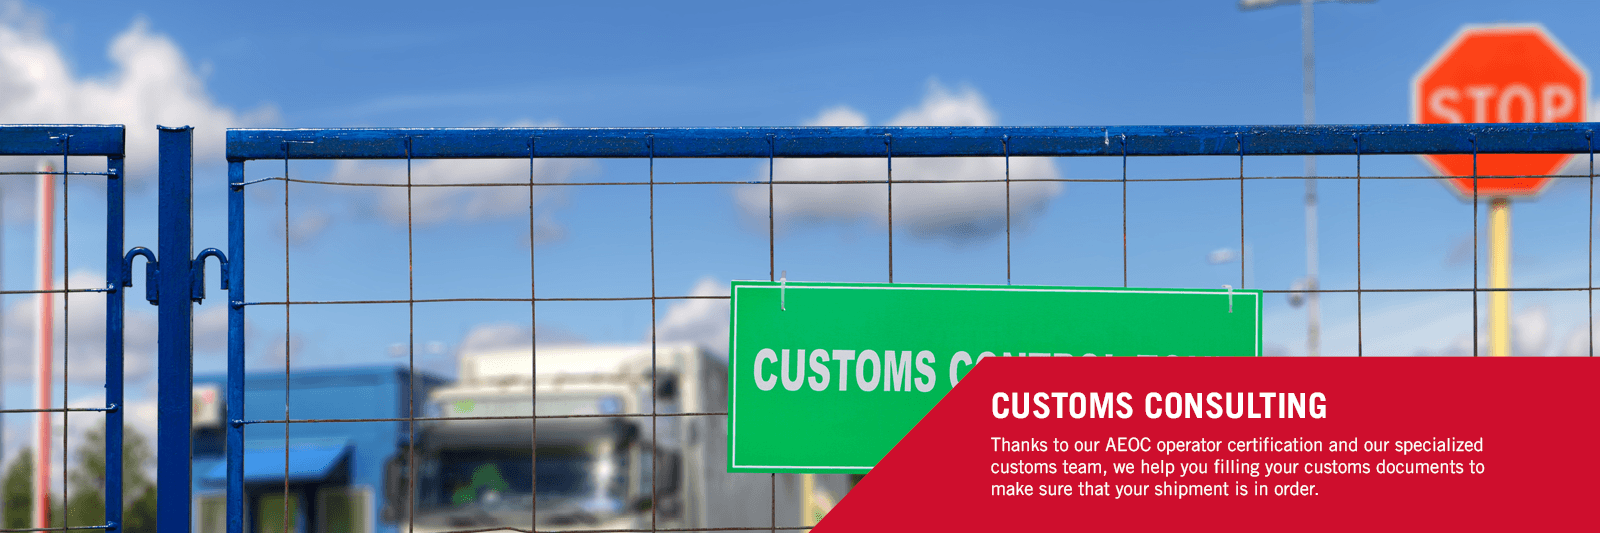 Customs consulting 1